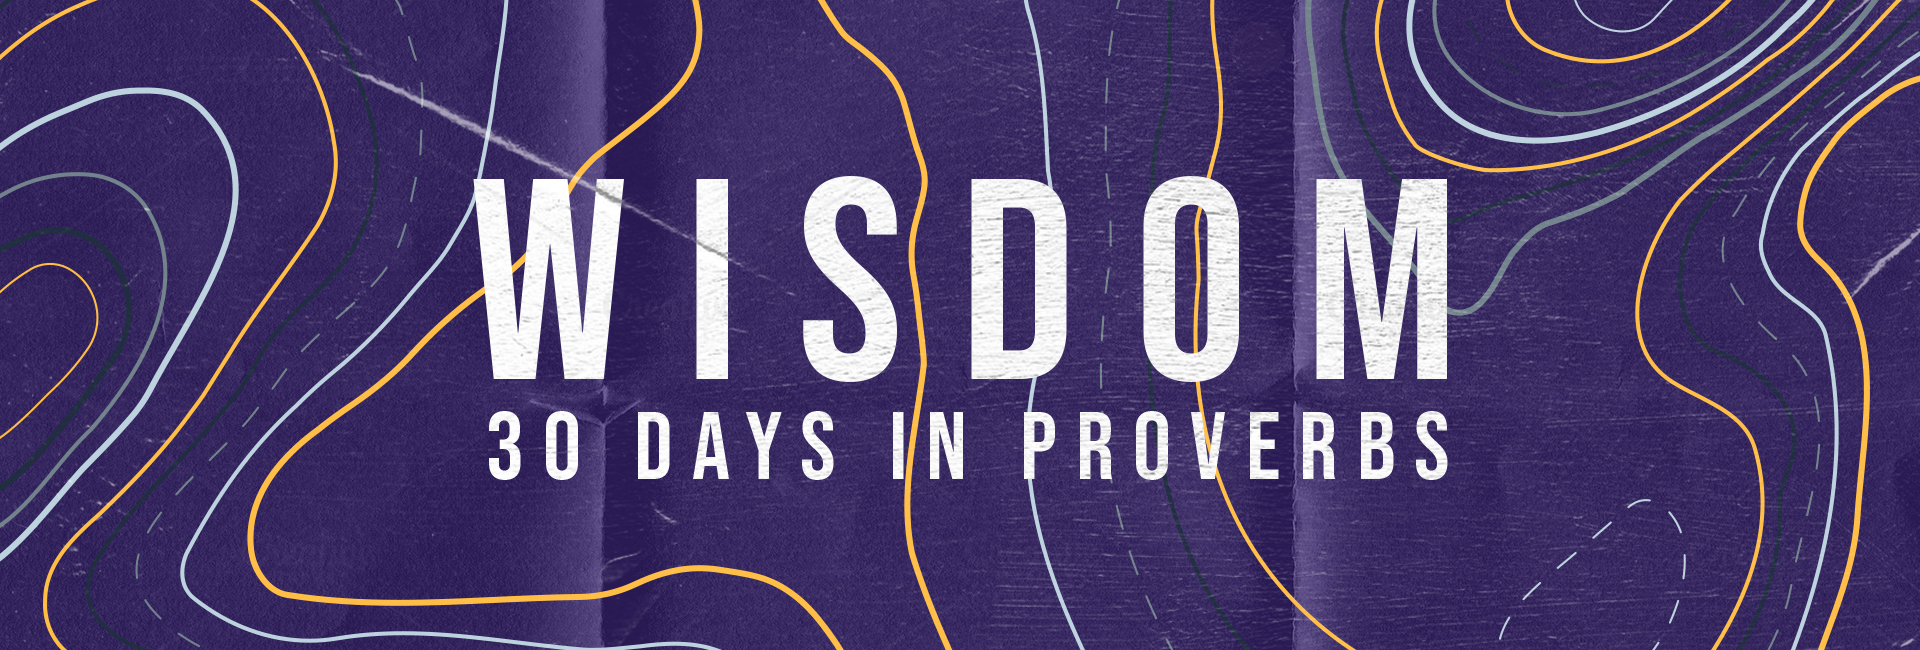 30 Days In Proverbs